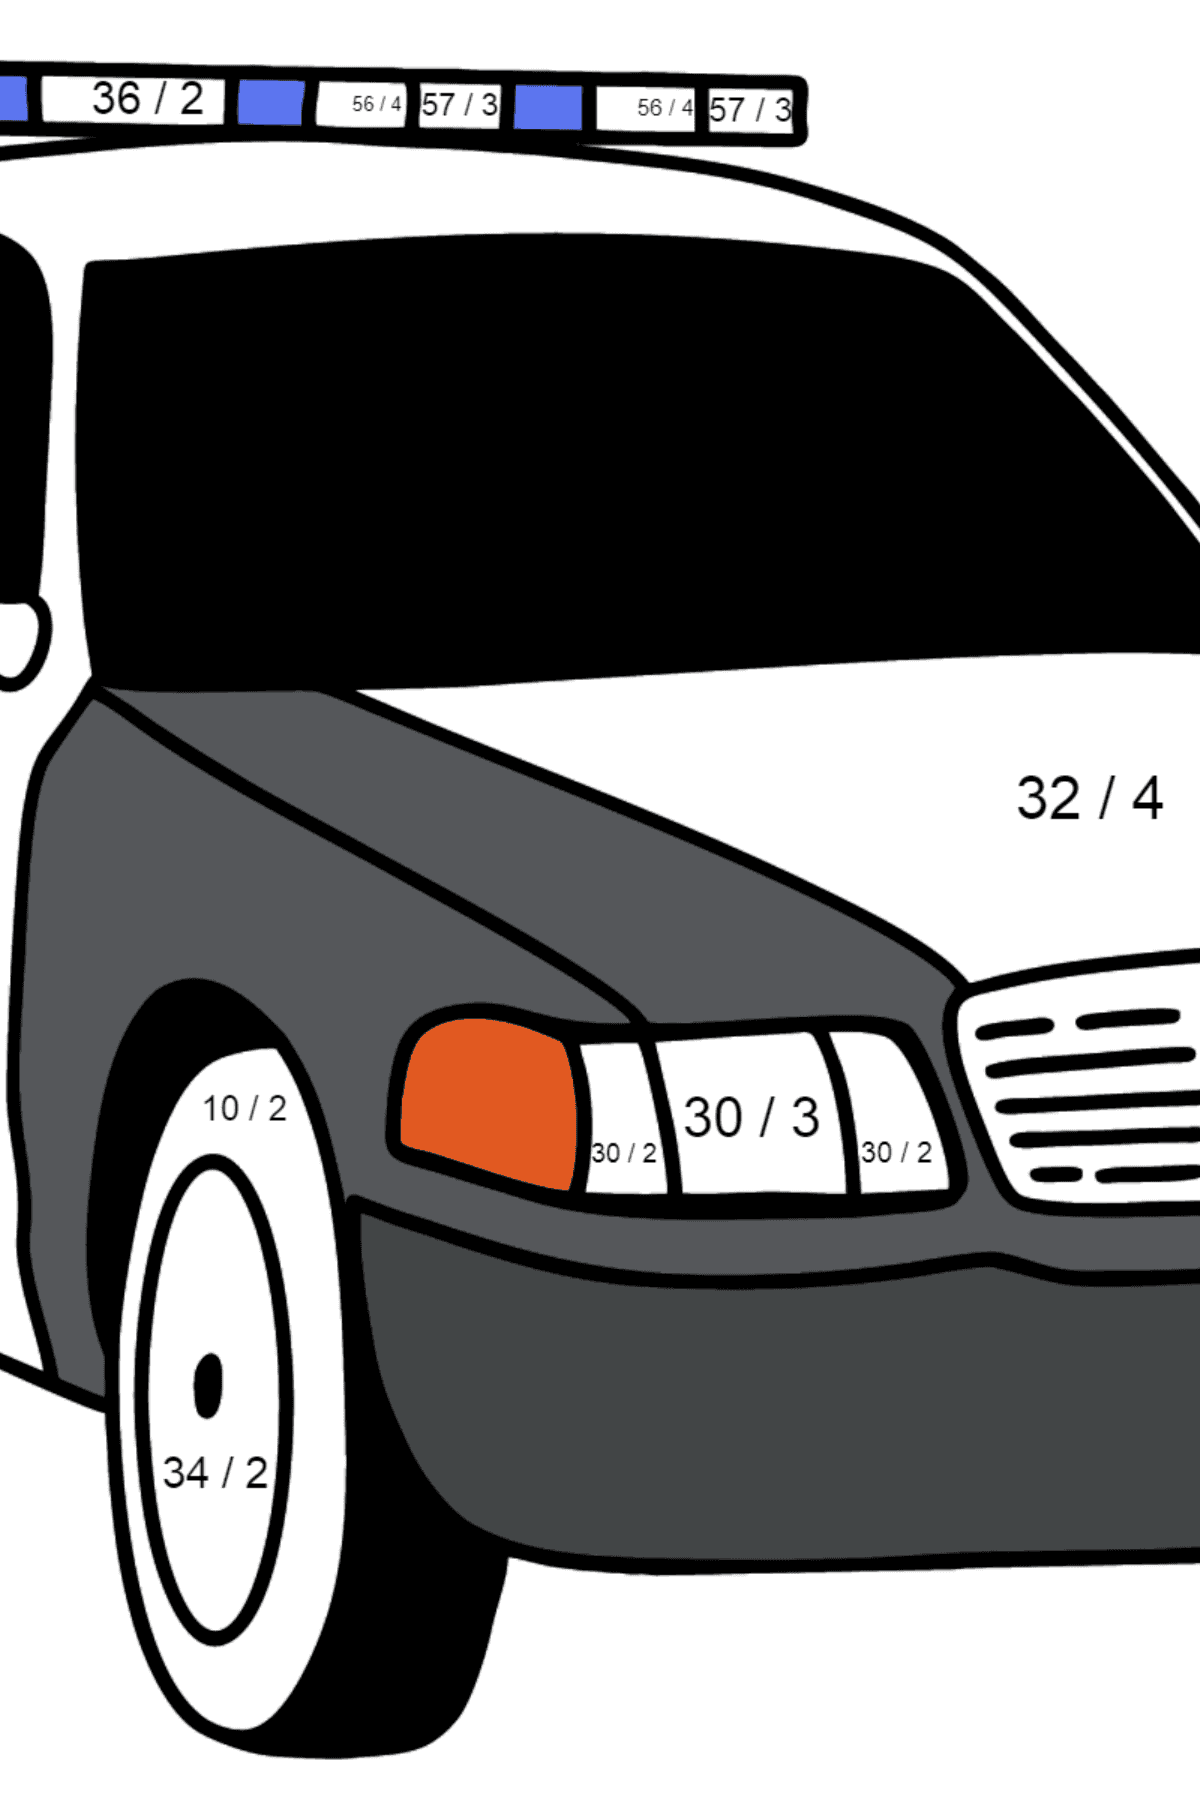 US Police Car coloring page - Math Coloring - Division for Kids